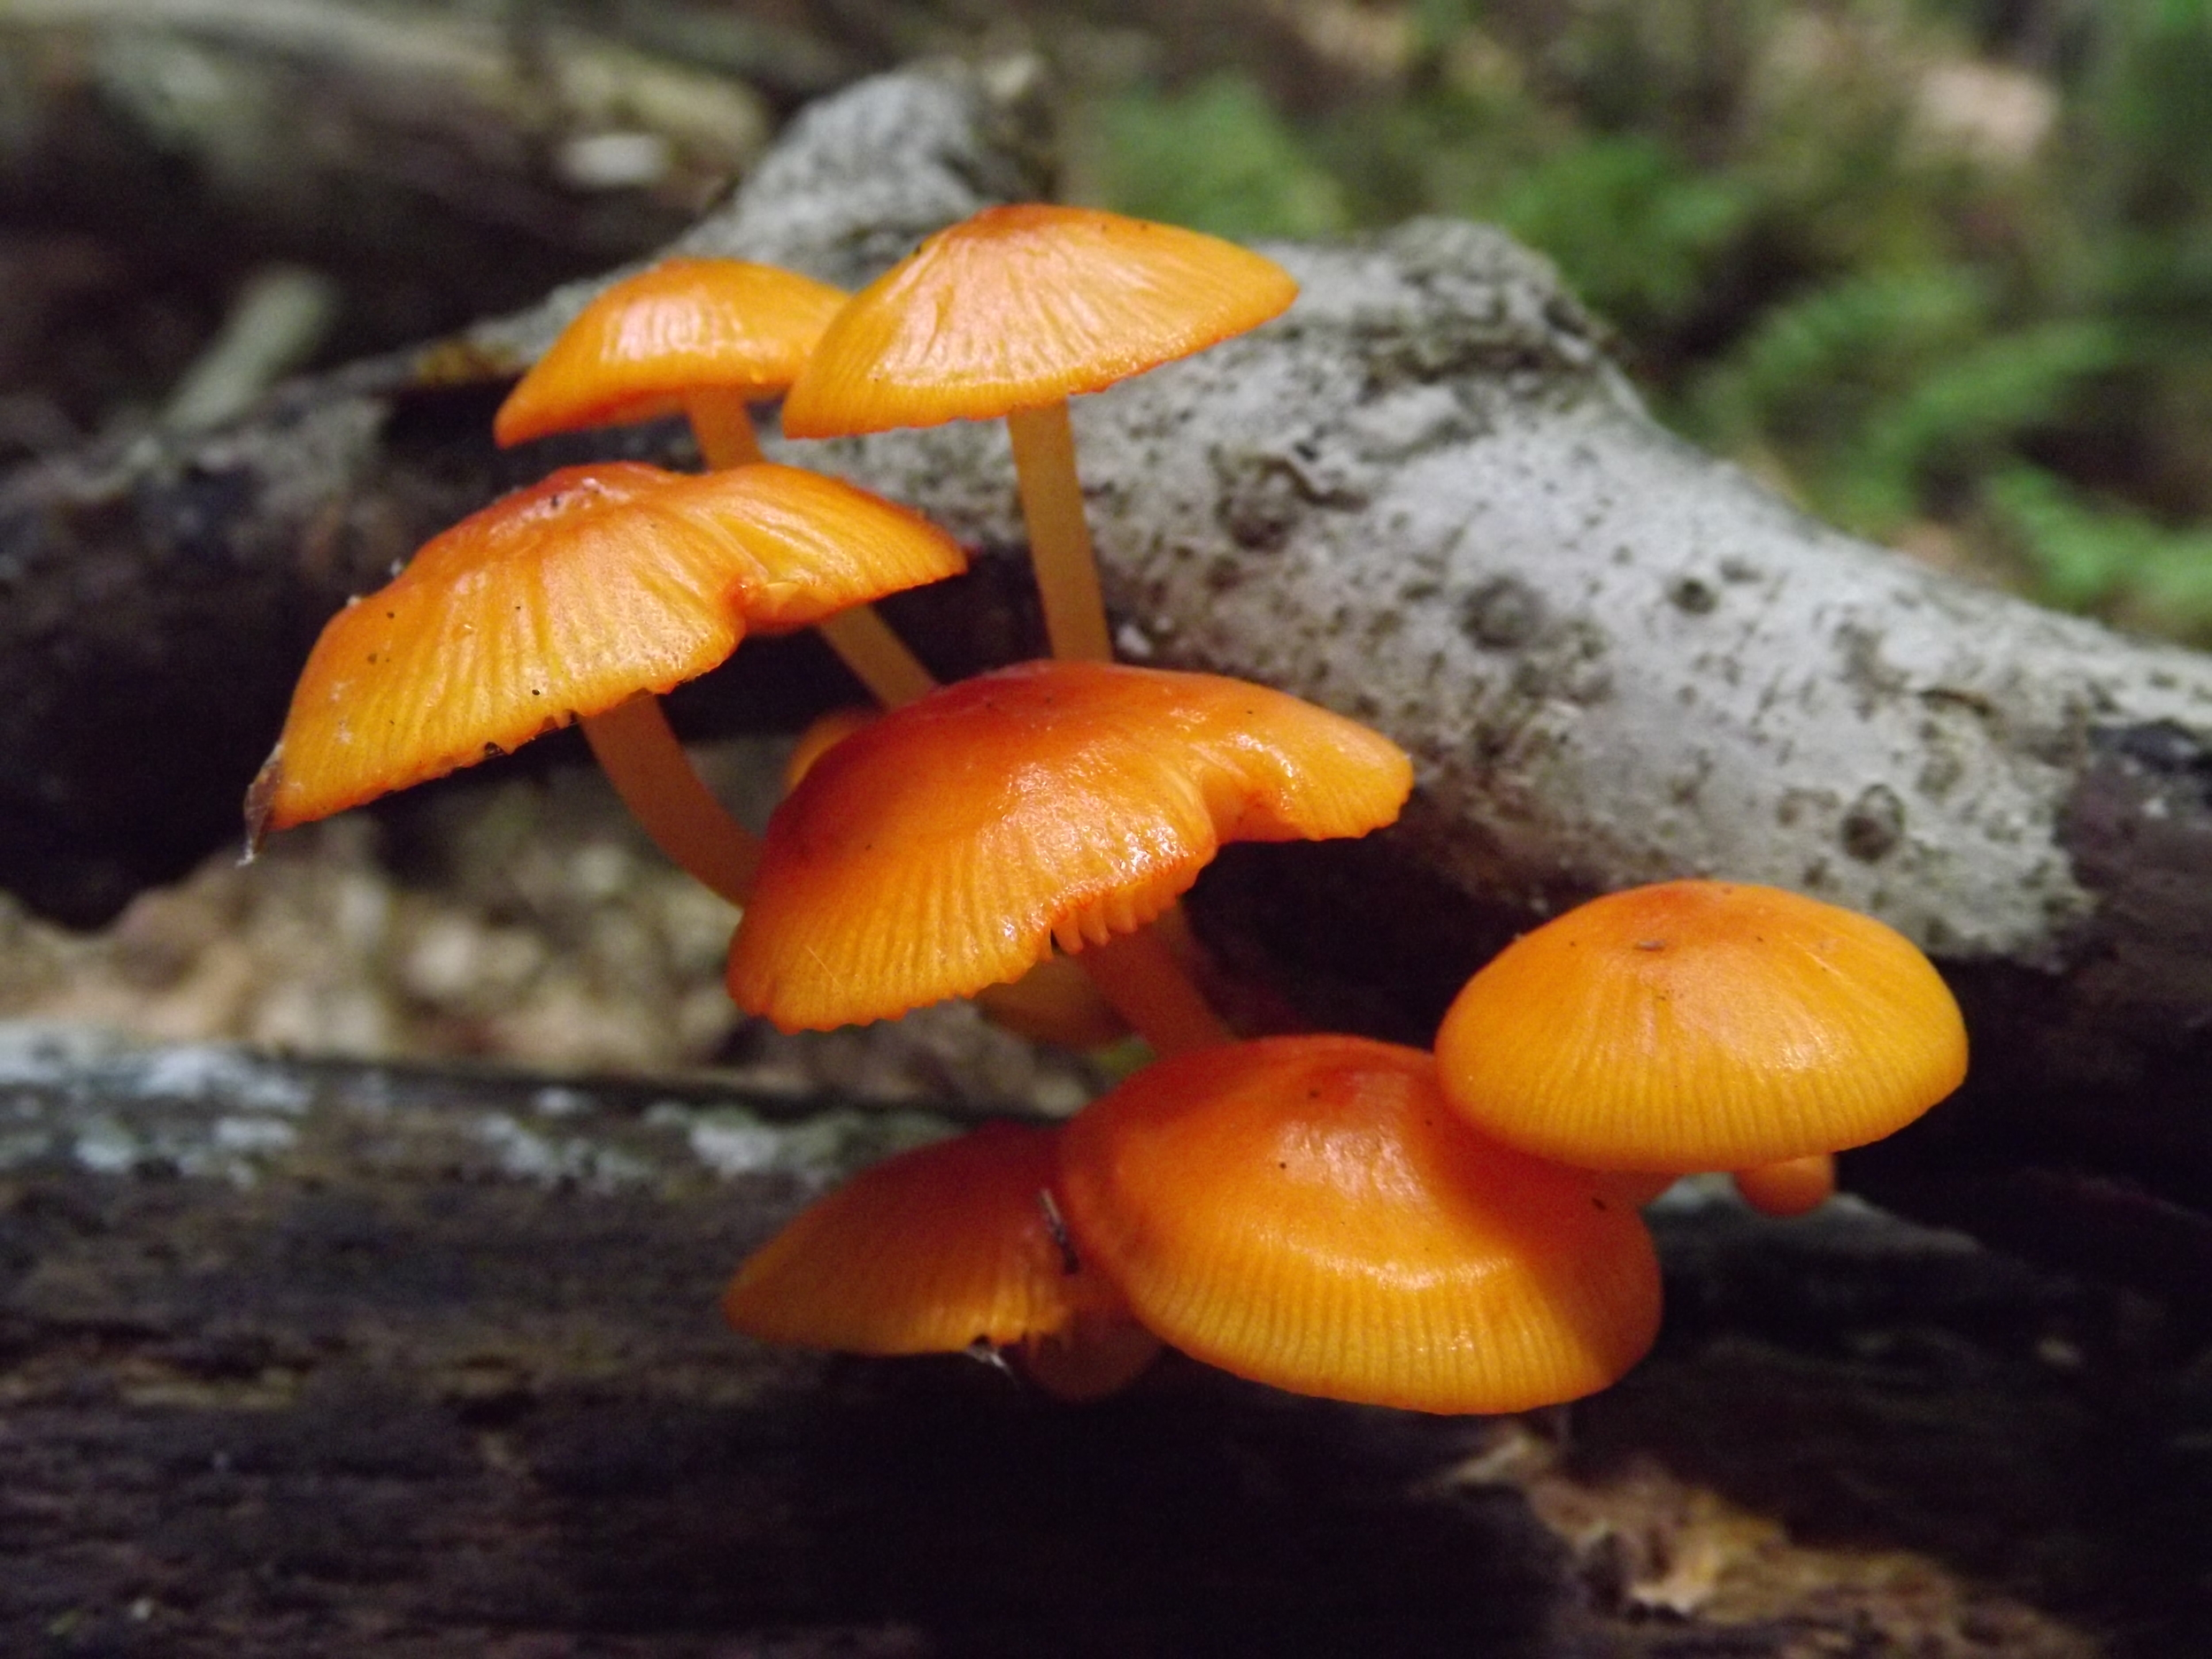 Orange Mycena ( Mycena leaiana ) -  Orany Mycena are really quite striking and their orange color almost glows it is so bright.  Orange Mycena typically grows in clumps like this and normally does not get more than a few inches high.